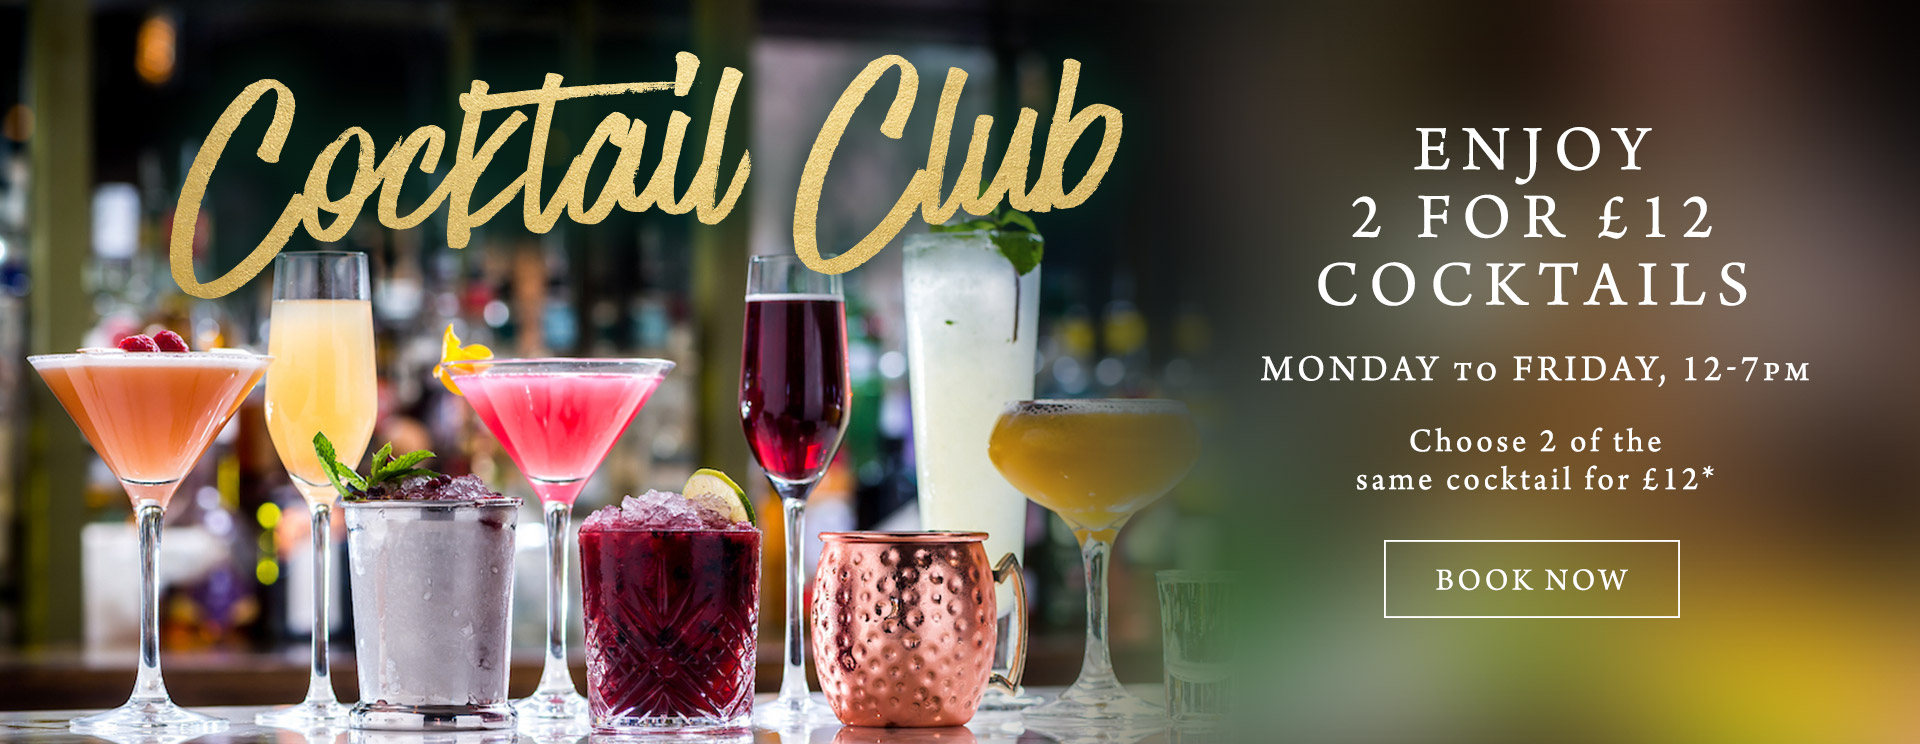 2 for £12 cocktails at The George & Dragon